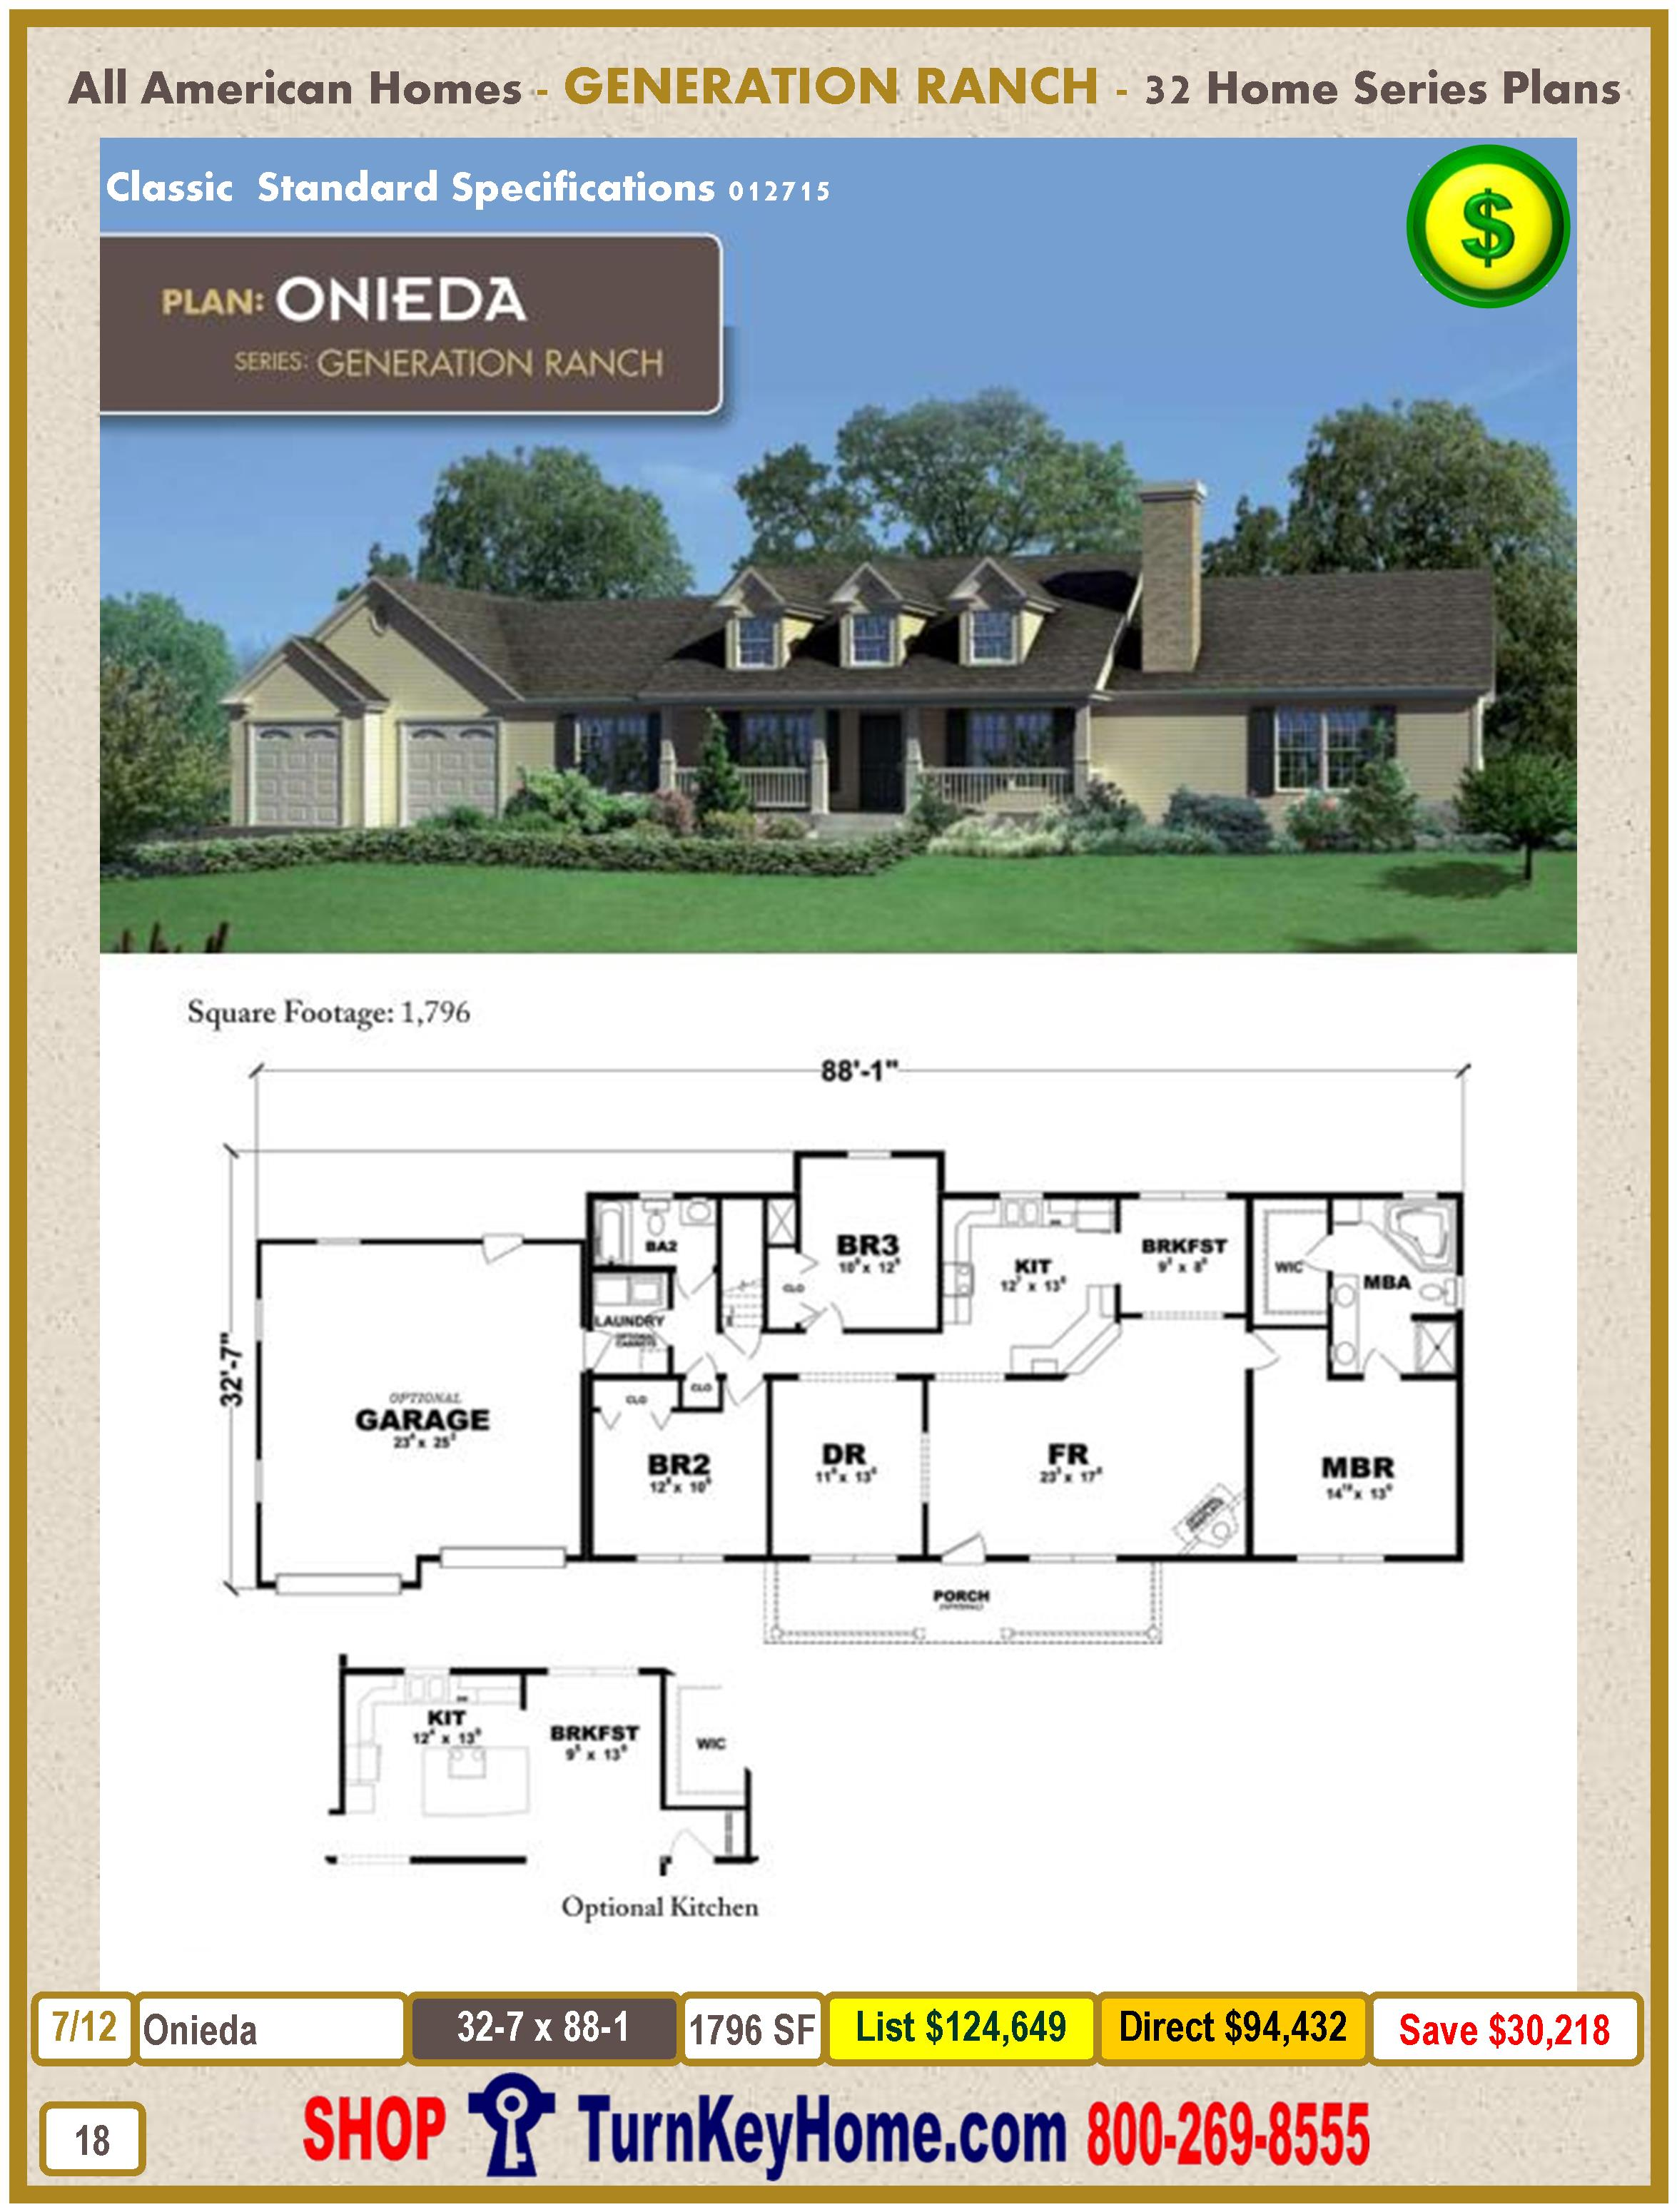 Modular.All.American.Homes.Generation.Ranch.Home.Series.Catalog.Page.18.Onieda.Direct.Price.021415